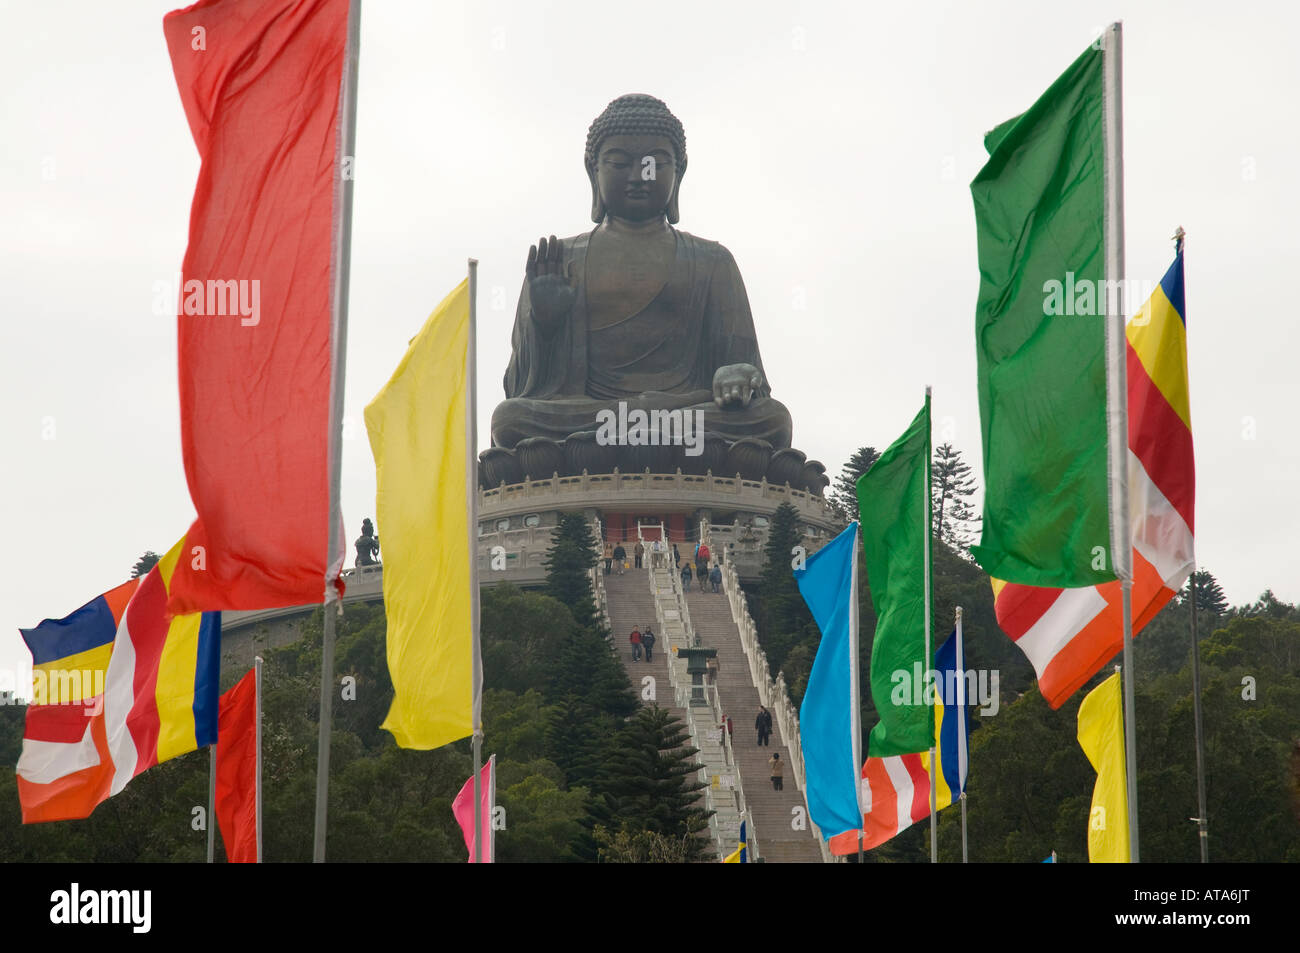 Tian Tan Buddha, Ngong Ping, Lantau, Hong Kong, Peoples' Republic of China. - Stock Image